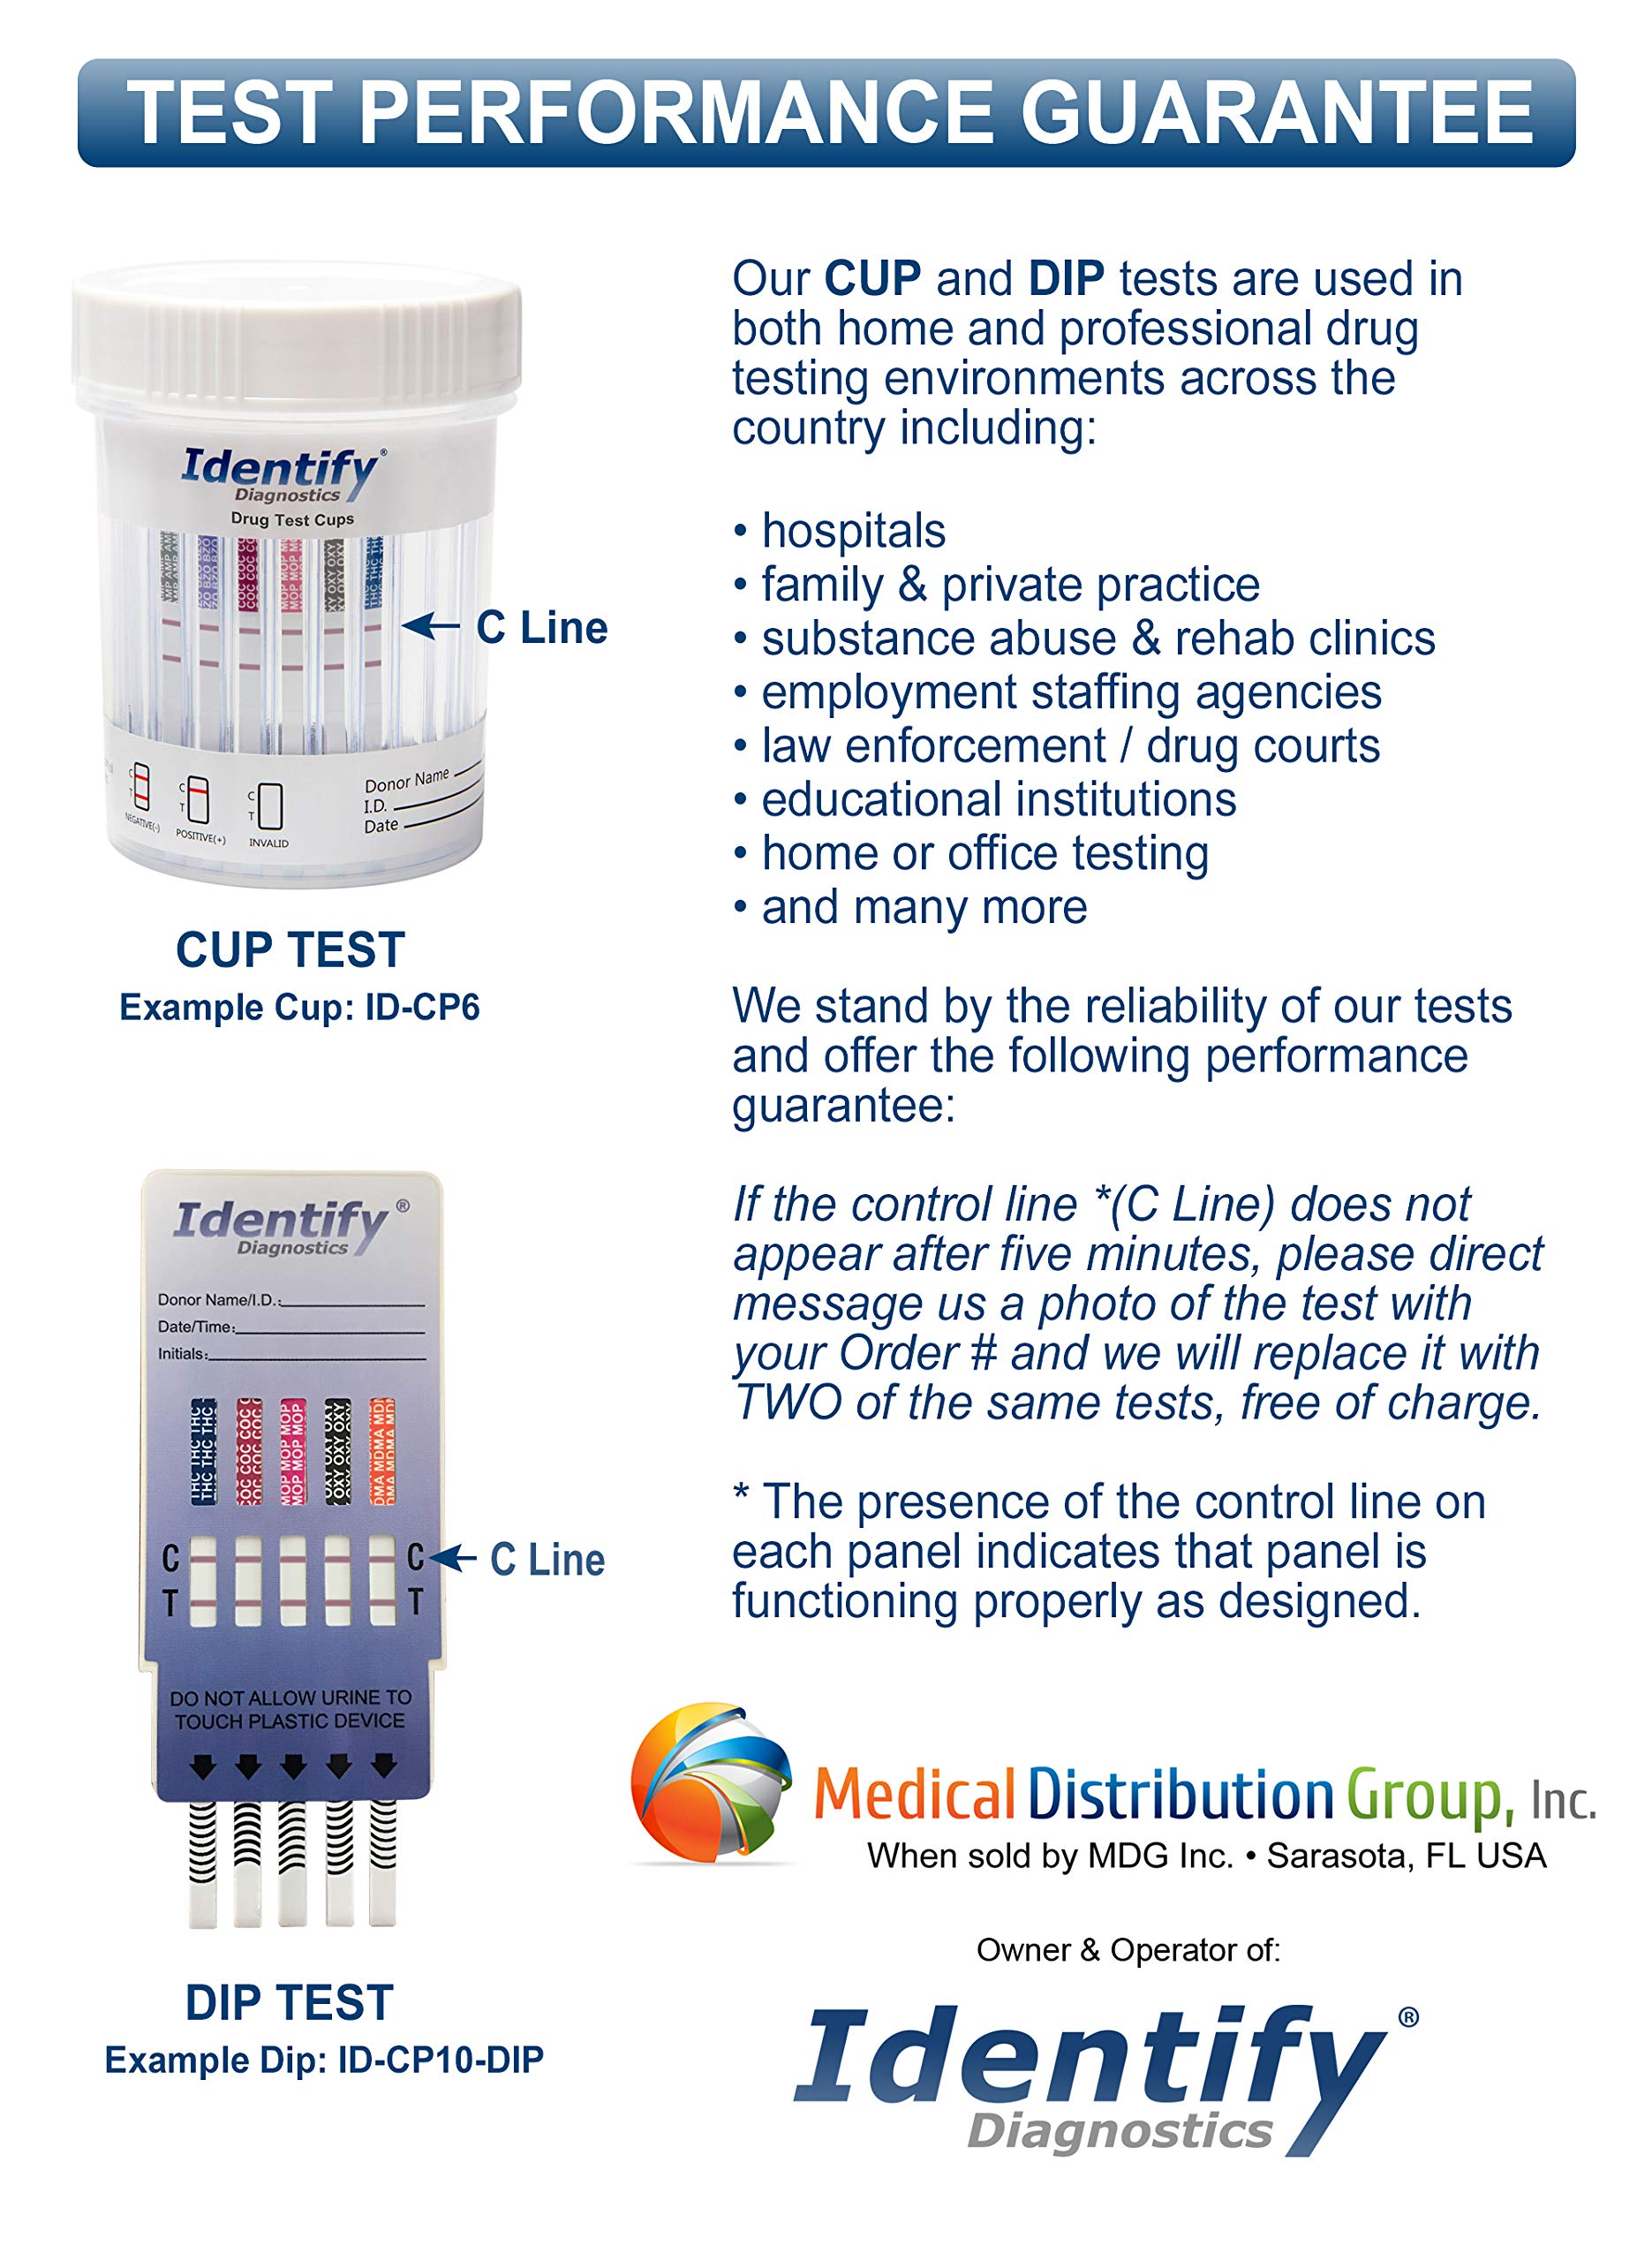 10 Pack Identify Diagnostics 10 Panel Drug Test Cup Testing Instantly for 10 Different Drugs: (THC), (COC), (OXY), (MOP), (AMP), (BAR), (BZO), (MET), (MTD), (PCP) #ID-CP10-AZ by Identify Diagnostics (Image #8)